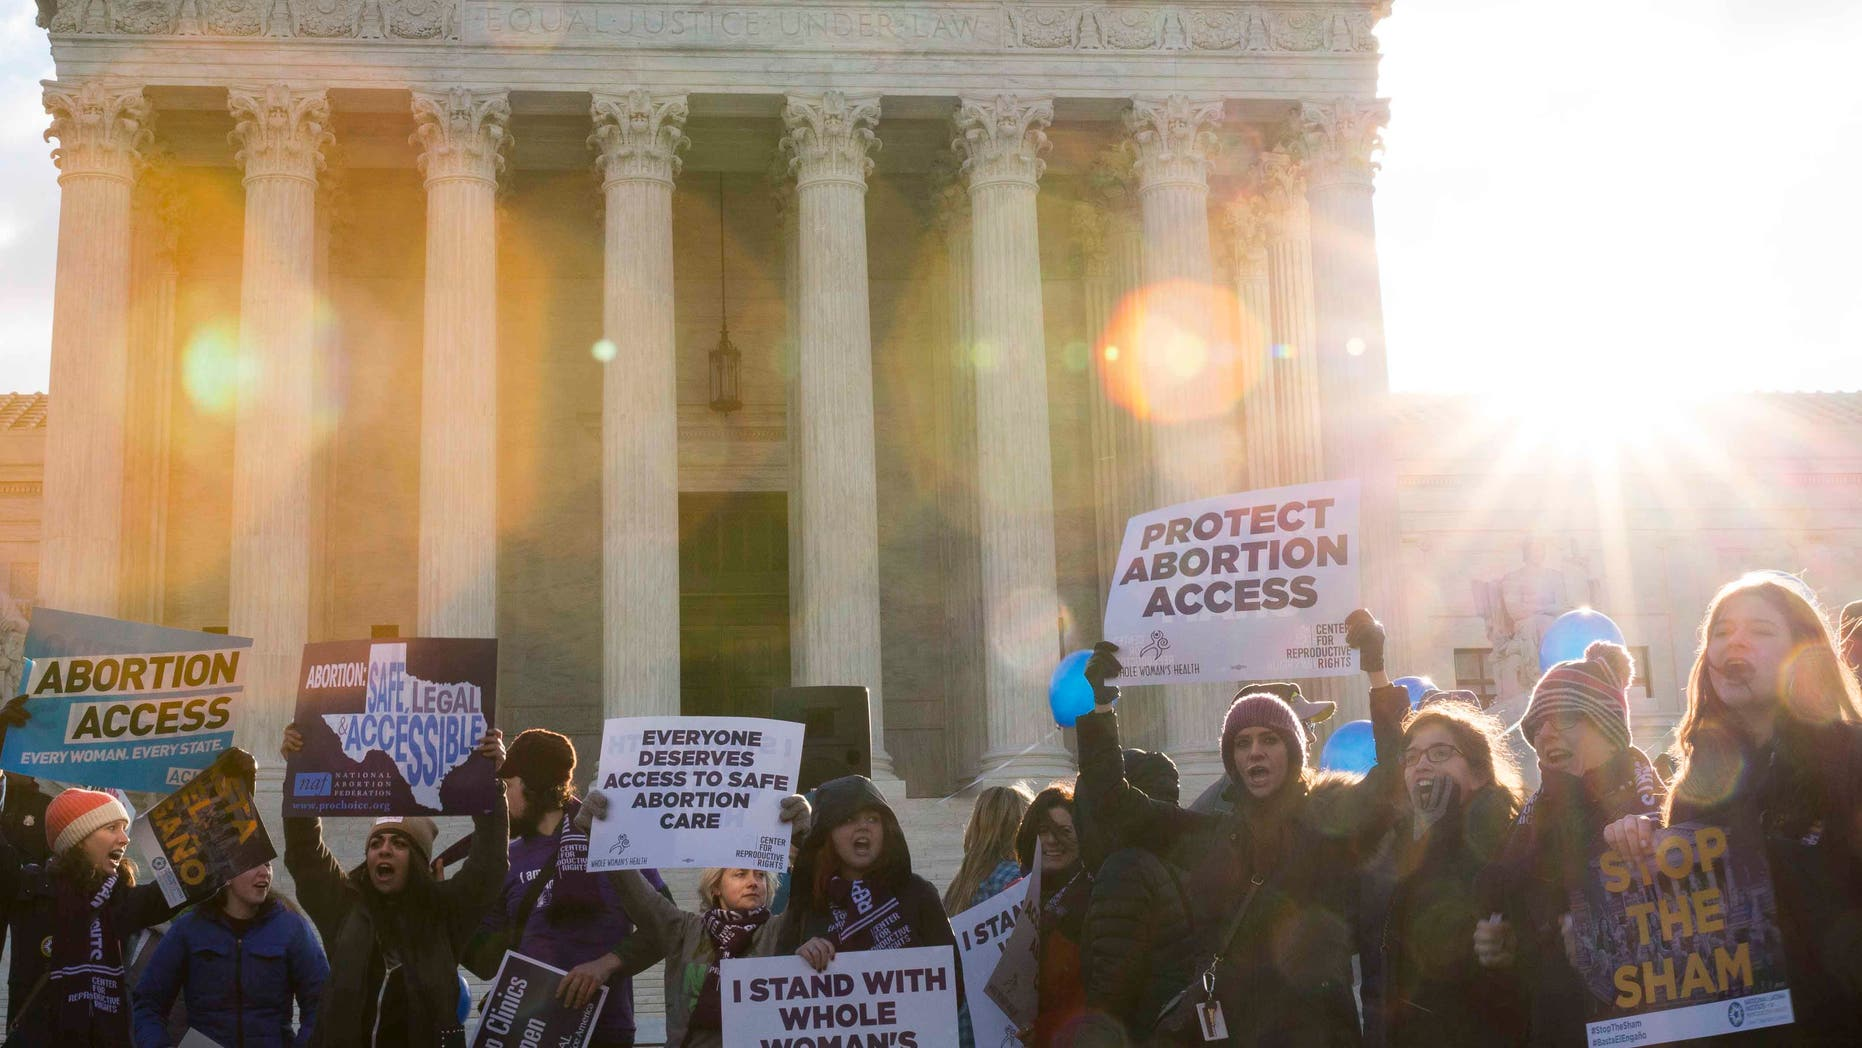 WASHINGTON, DC - MARCH 02:  Pro-choice advocates rally outside of the Supreme Court on March 2, 2016 in Washington, DC.  On Wednesday morning, the Supreme Court will hear oral arguments in the Whole Woman's Health v. Hellerstedt case, where the justices will consider a Texas law requiring that clinic doctors have admitting privileges at local hospitals and that clinics upgrade their facilities to standards similar to hospitals. (Drew Angerer/Getty Images)